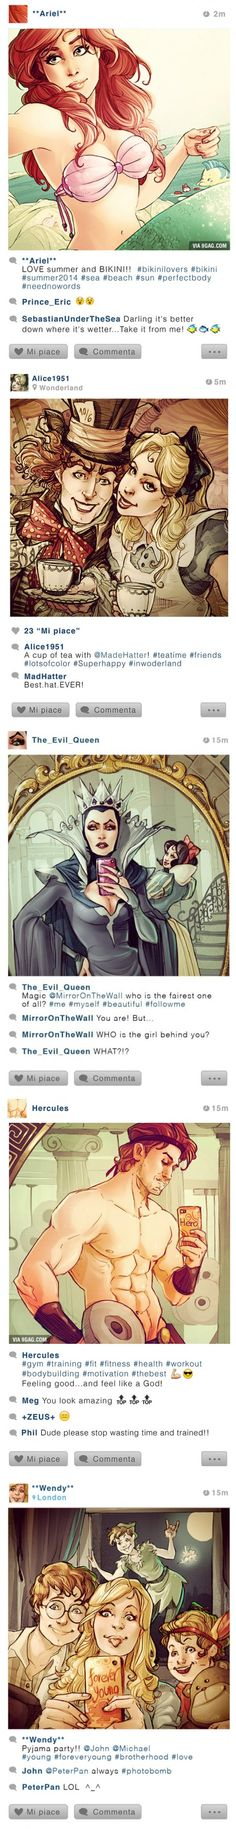 This Is What The Instagram Feed Of A Disney Character Looks Like